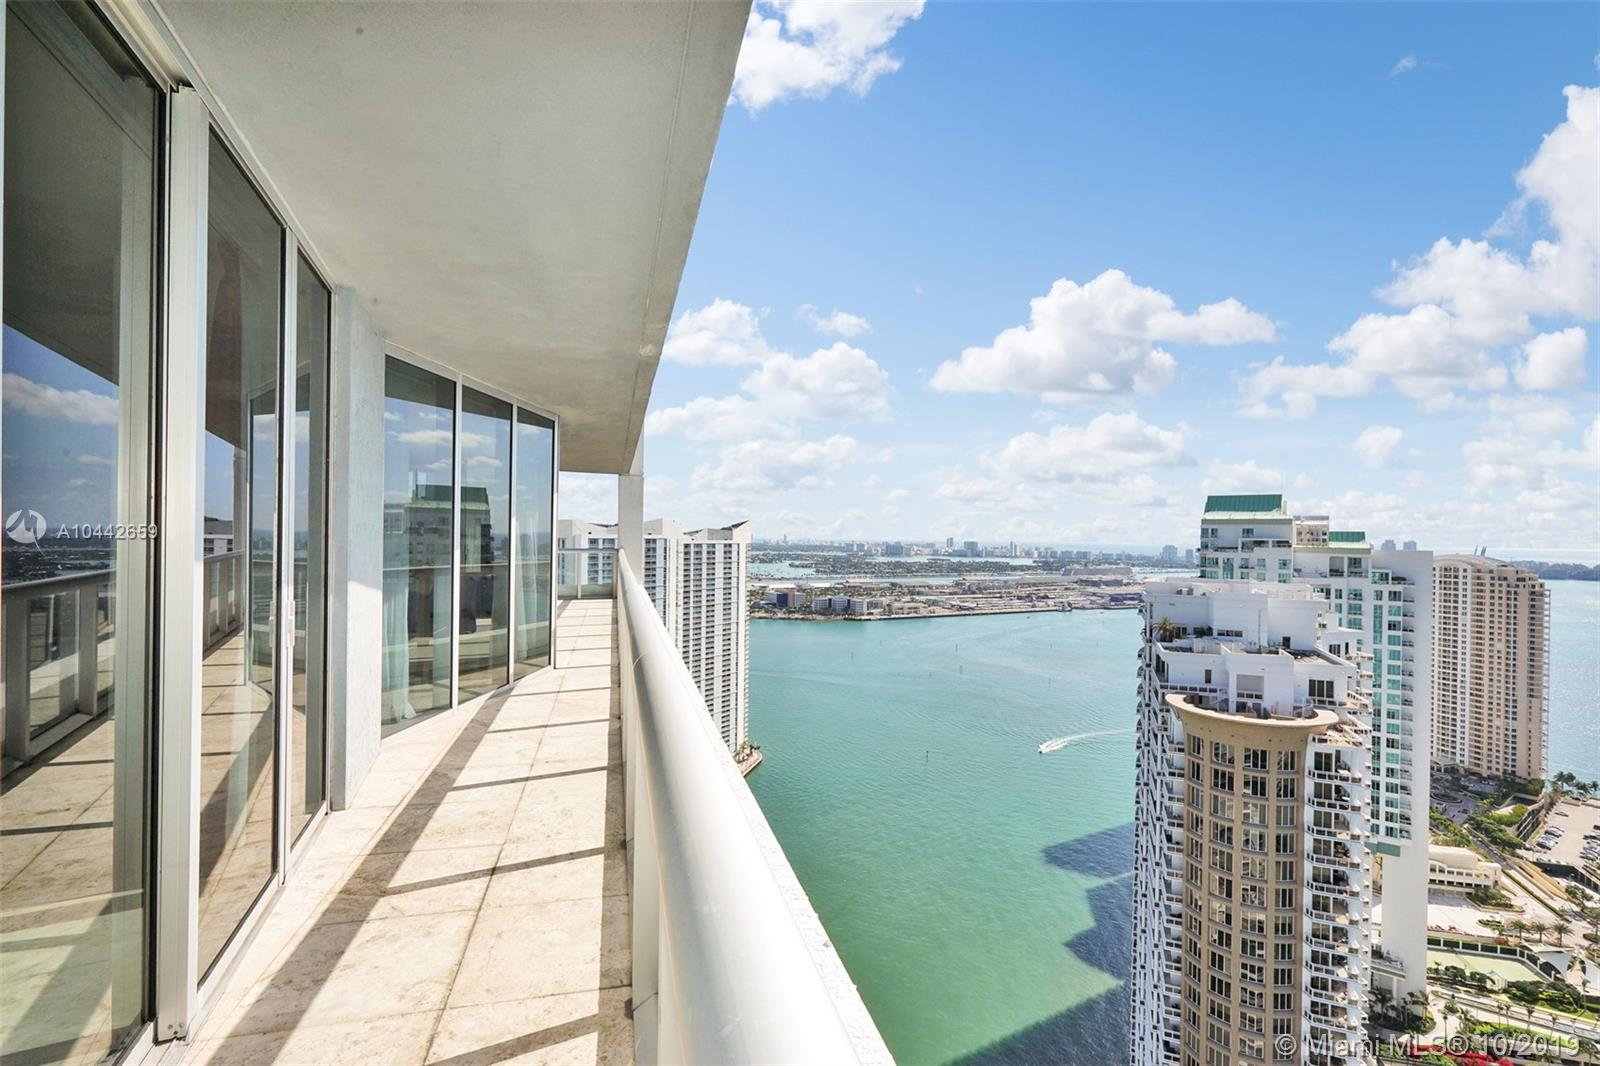 Unobstructed Water Views From This Spectacular Turn-Key Corner Unit At The Icon Brickell Tower 1, 3 Bedrooms, 2.5 Baths. Designer Furnished Unit Features Wolf & Sub Zero Appliances. Marble Floors, Motorized Shades, 2 Walk-In Custom Closets. Live At The Most Exclusive Building In Miami'S Highly Desired Brickell Area. World Famous Spa, Olympic Pool & Amenities For You & Your Family To Enjoy The Miami Lifestyle In Your Home In The Sky, Overlooking Brickell Key, Key Biscayne And South Beach. Walkable To Brickell City Center & Fine Restaurants. Completely Furnished, Just Bring Your Belongings And Move In! All Assessments Paid In Full!        <Br />2 Parking Spaces !....Motivated Seller !!!